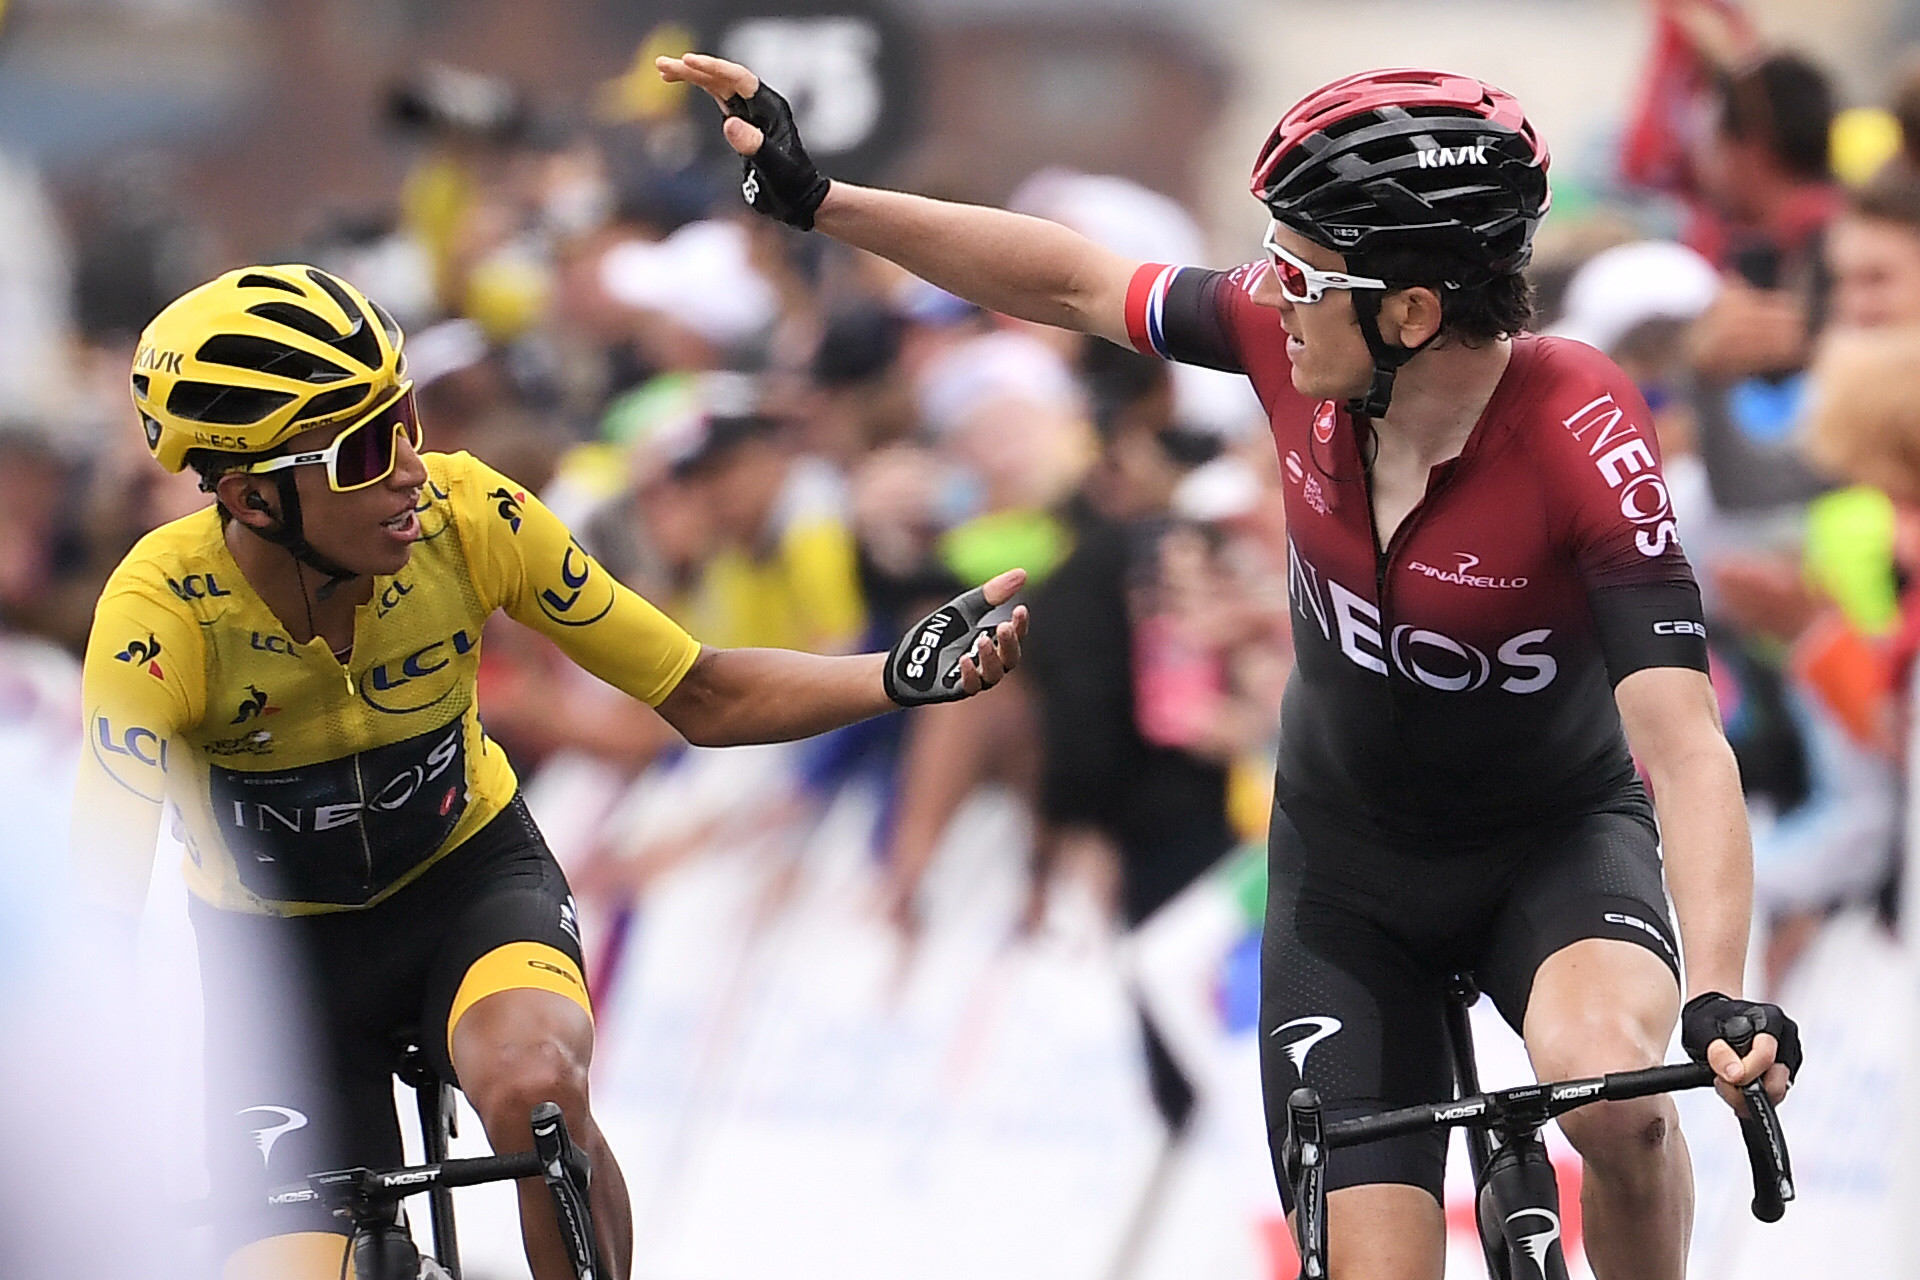 Bernal set to become first Colombian Tour de France winner after retaining lead